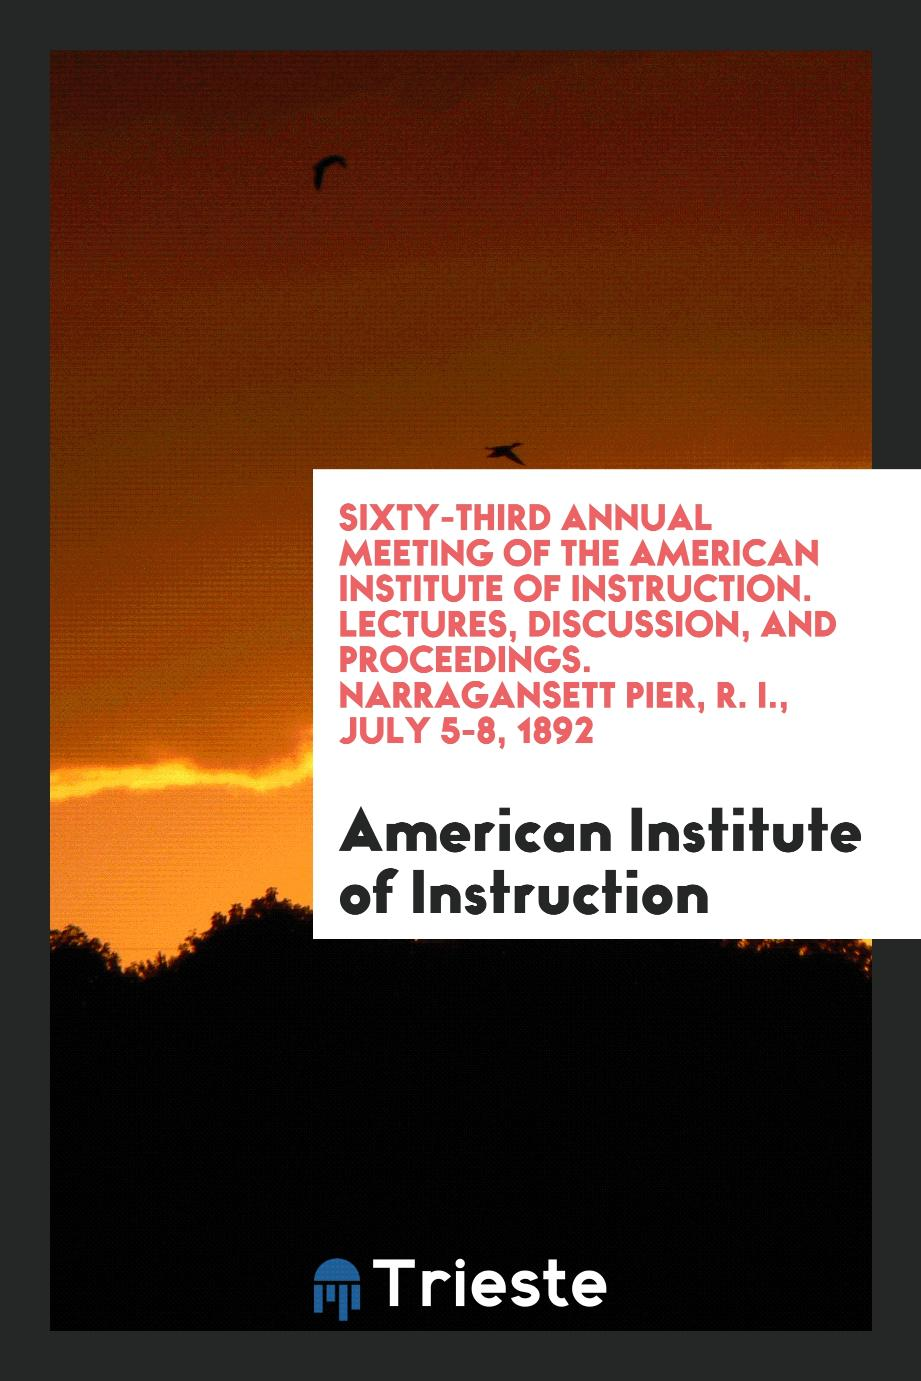 Sixty-Third Annual Meeting of the American Institute of Instruction. Lectures, Discussion, and Proceedings. Narragansett Pier, R. I., July 5-8, 1892